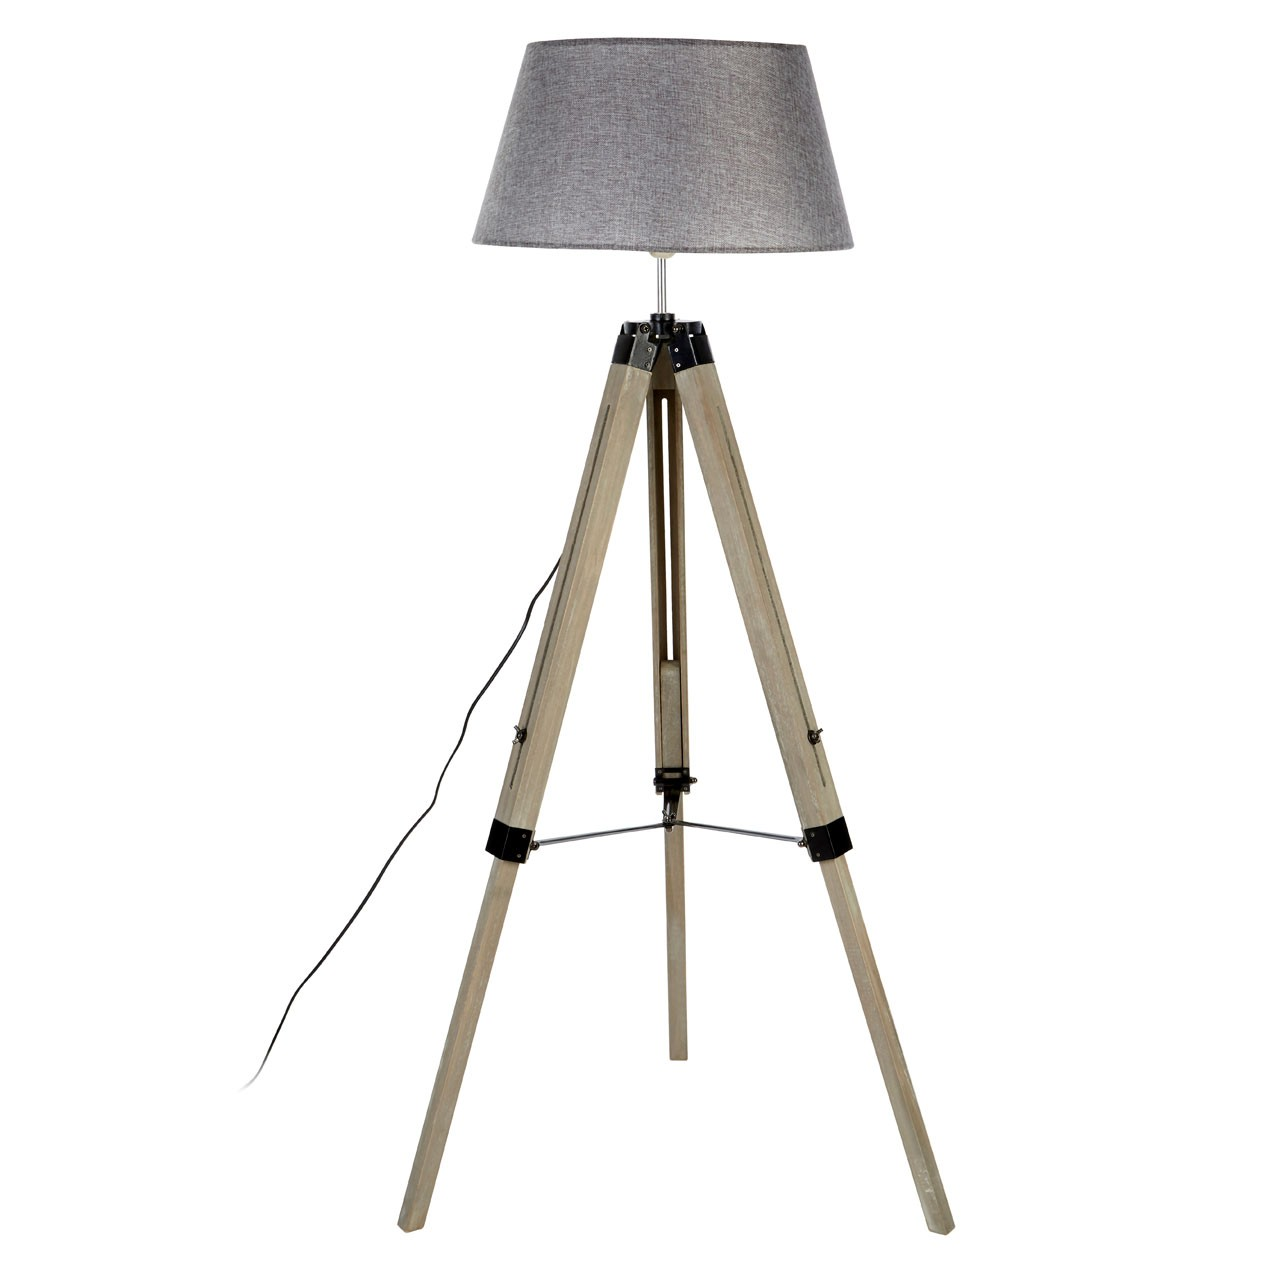 Prime Furnishing Harper Grey Wood Floor Lamp, Tripod, Grey Shade